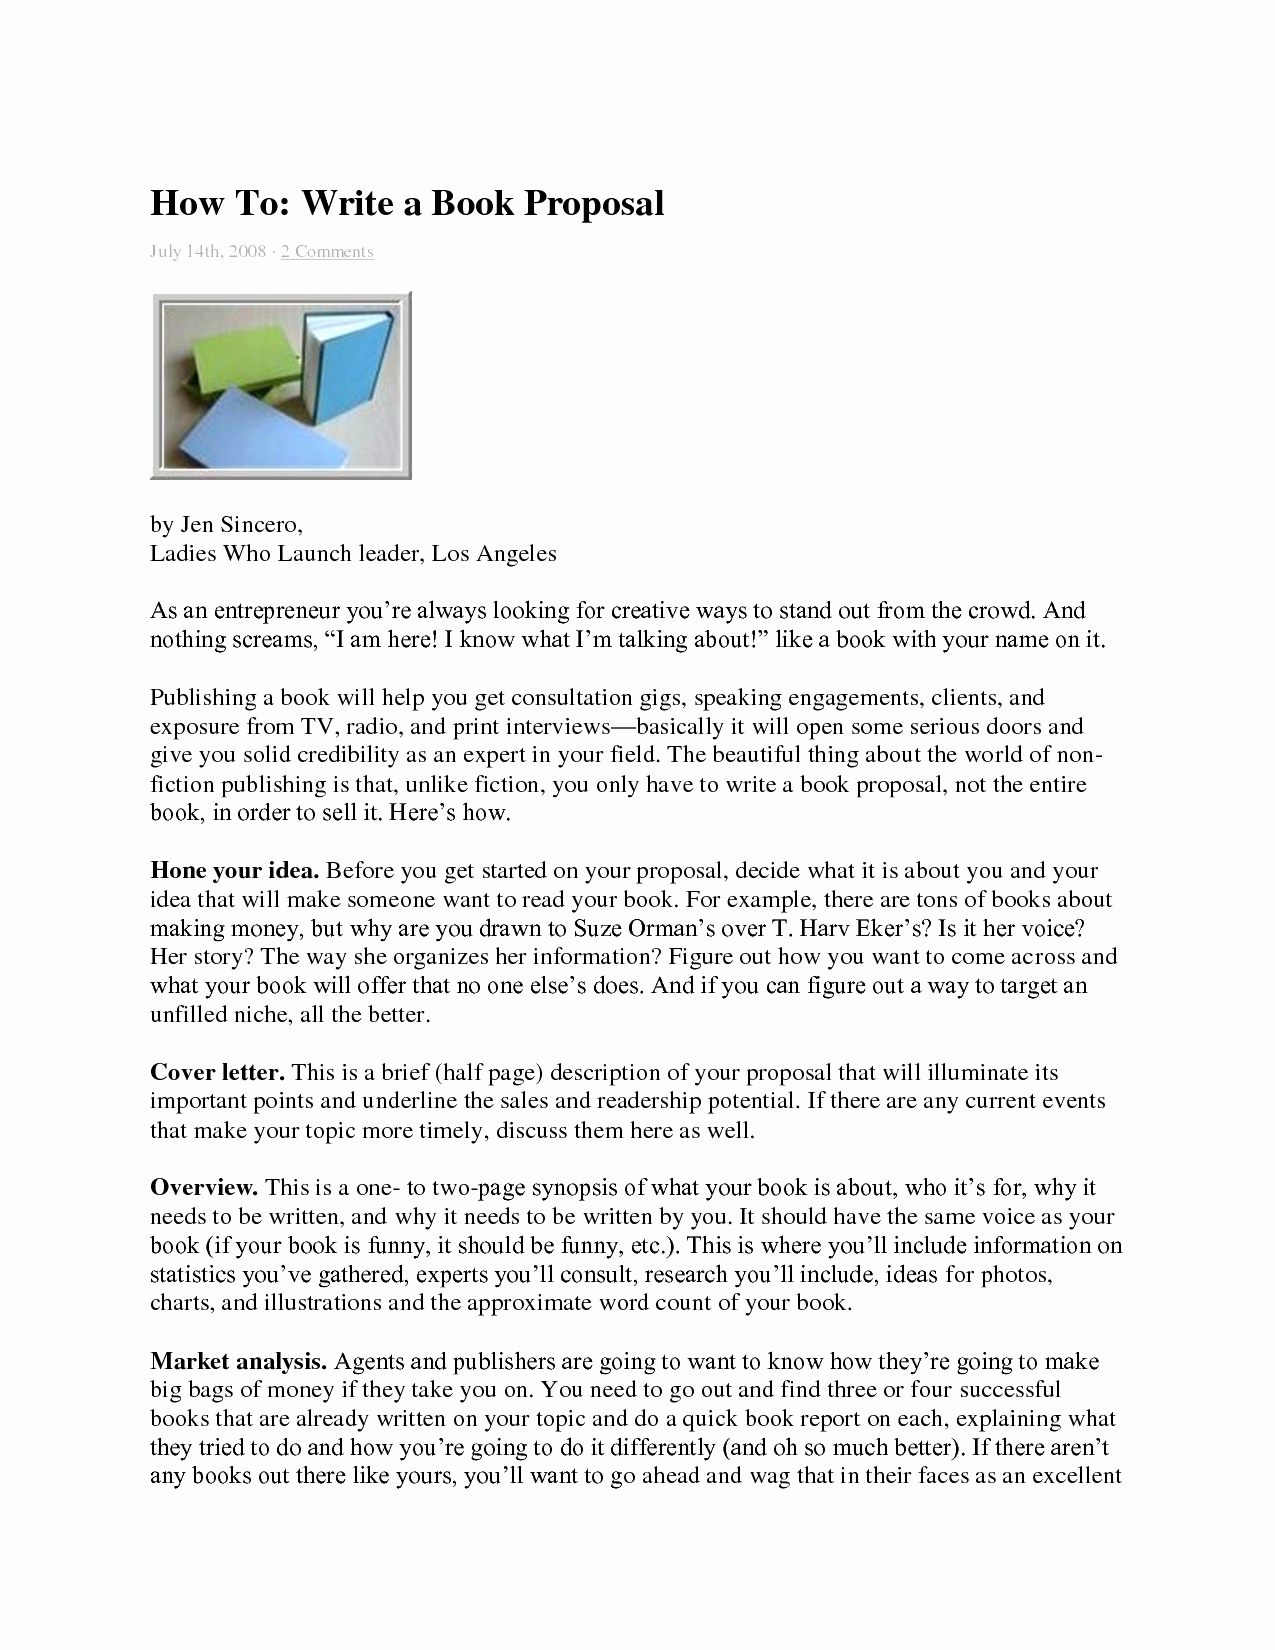 Nonfiction Book Proposal Template New Nonfiction Book Proposal Template Best Fiction Book